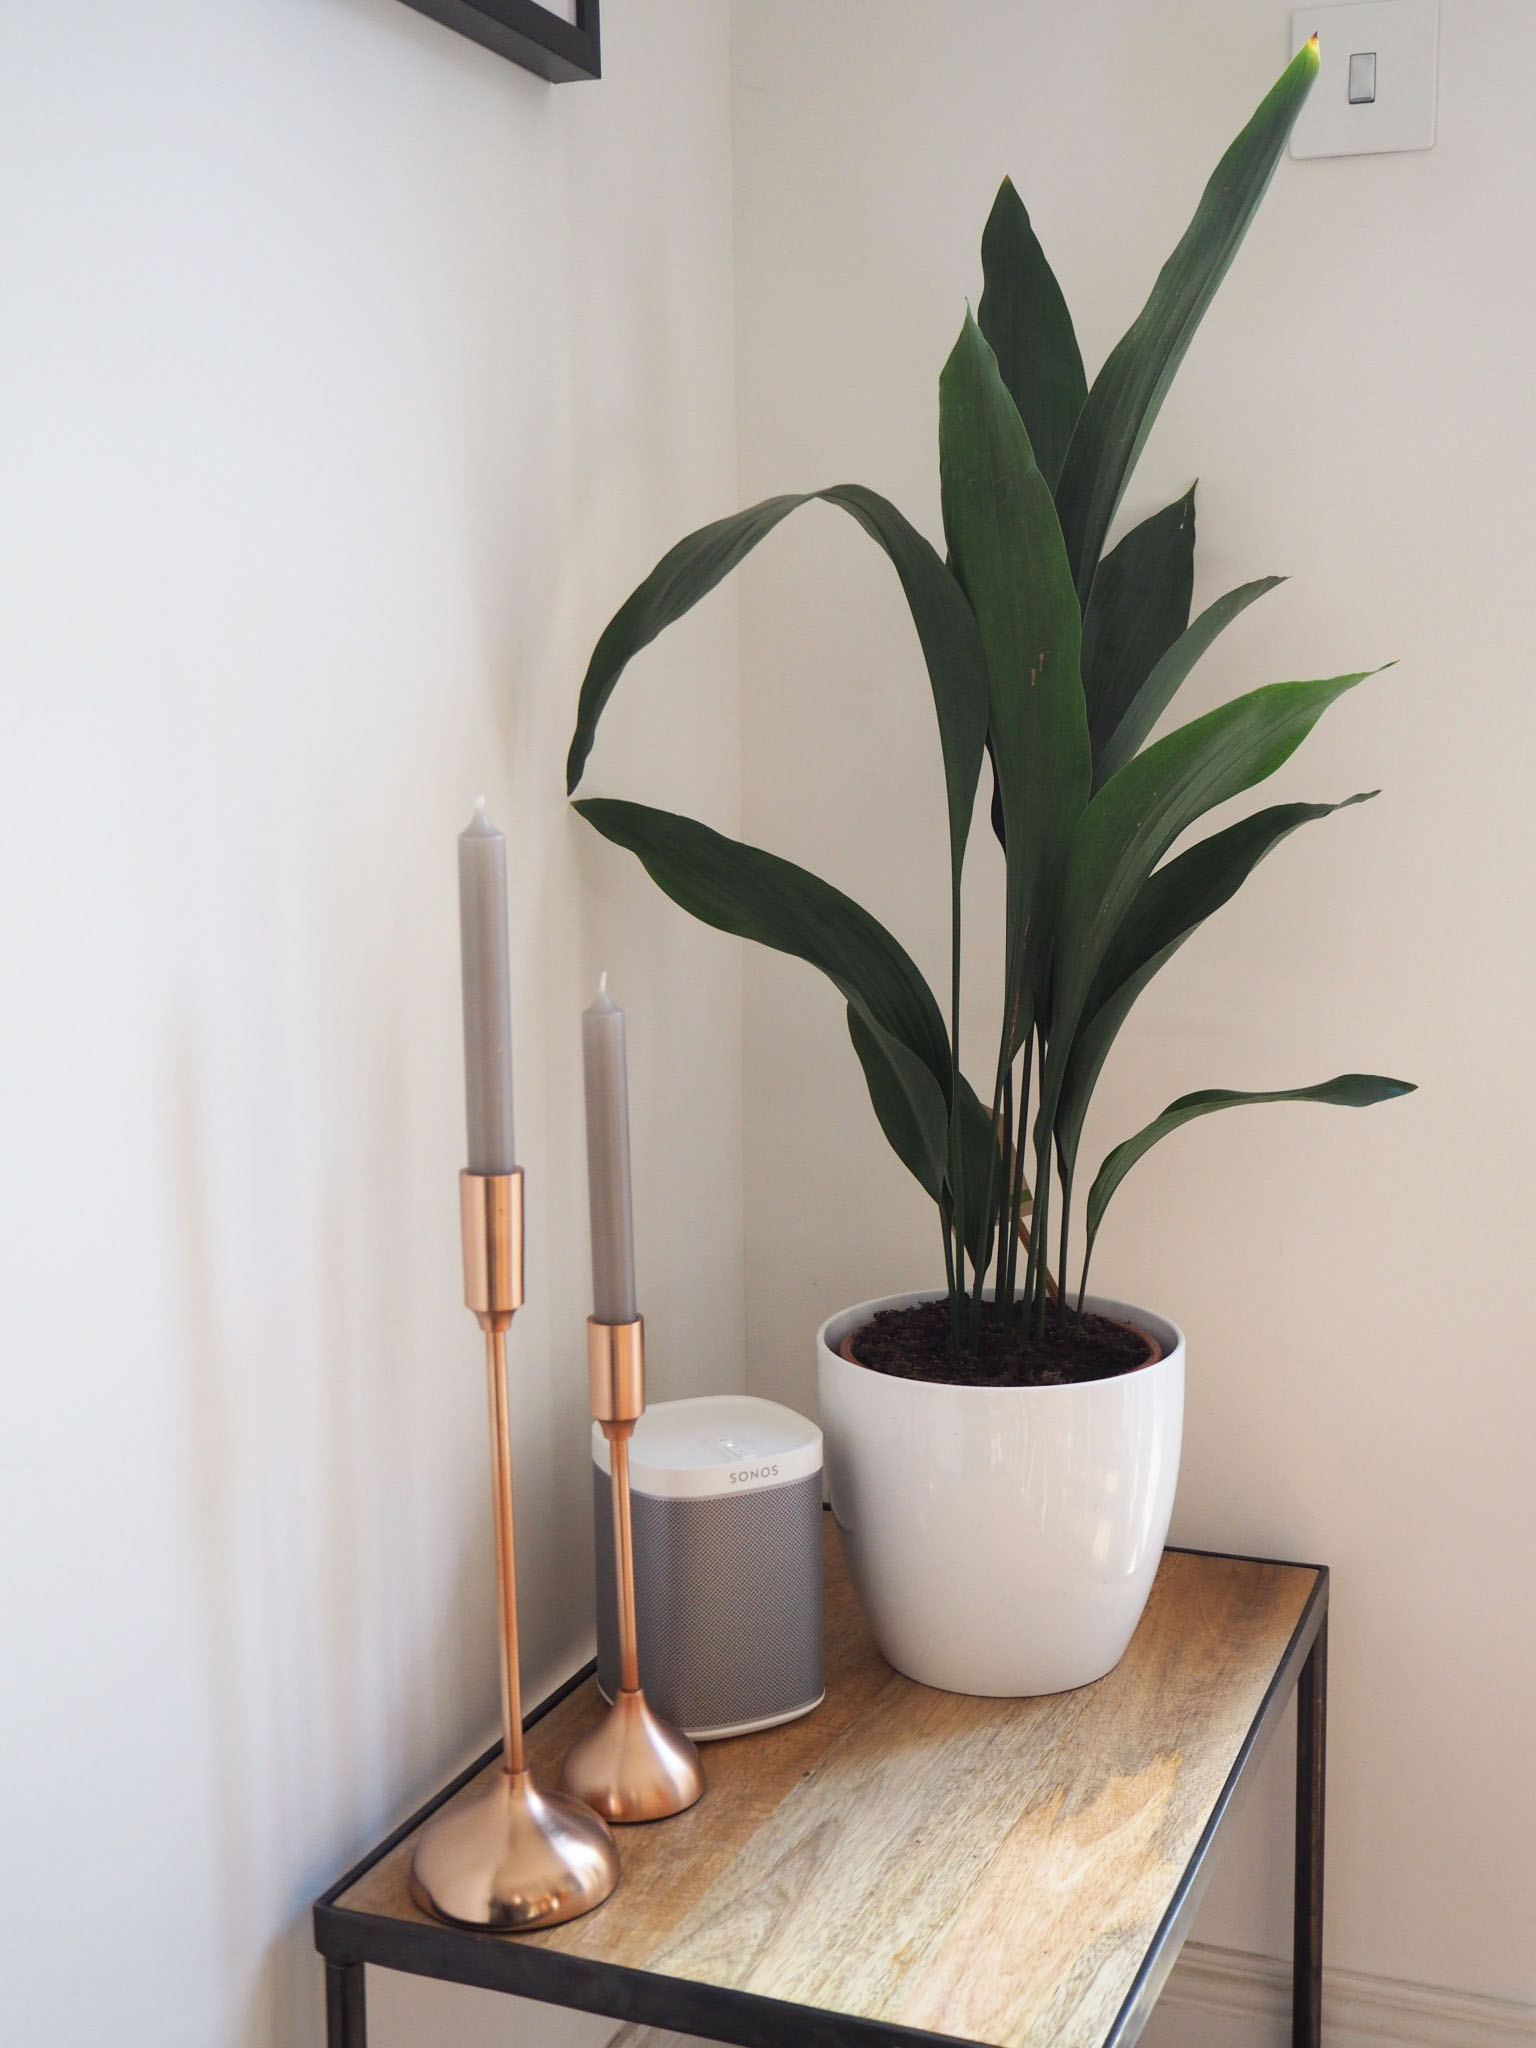 kitchen plants, copper candle sticks and sonos speakers!!